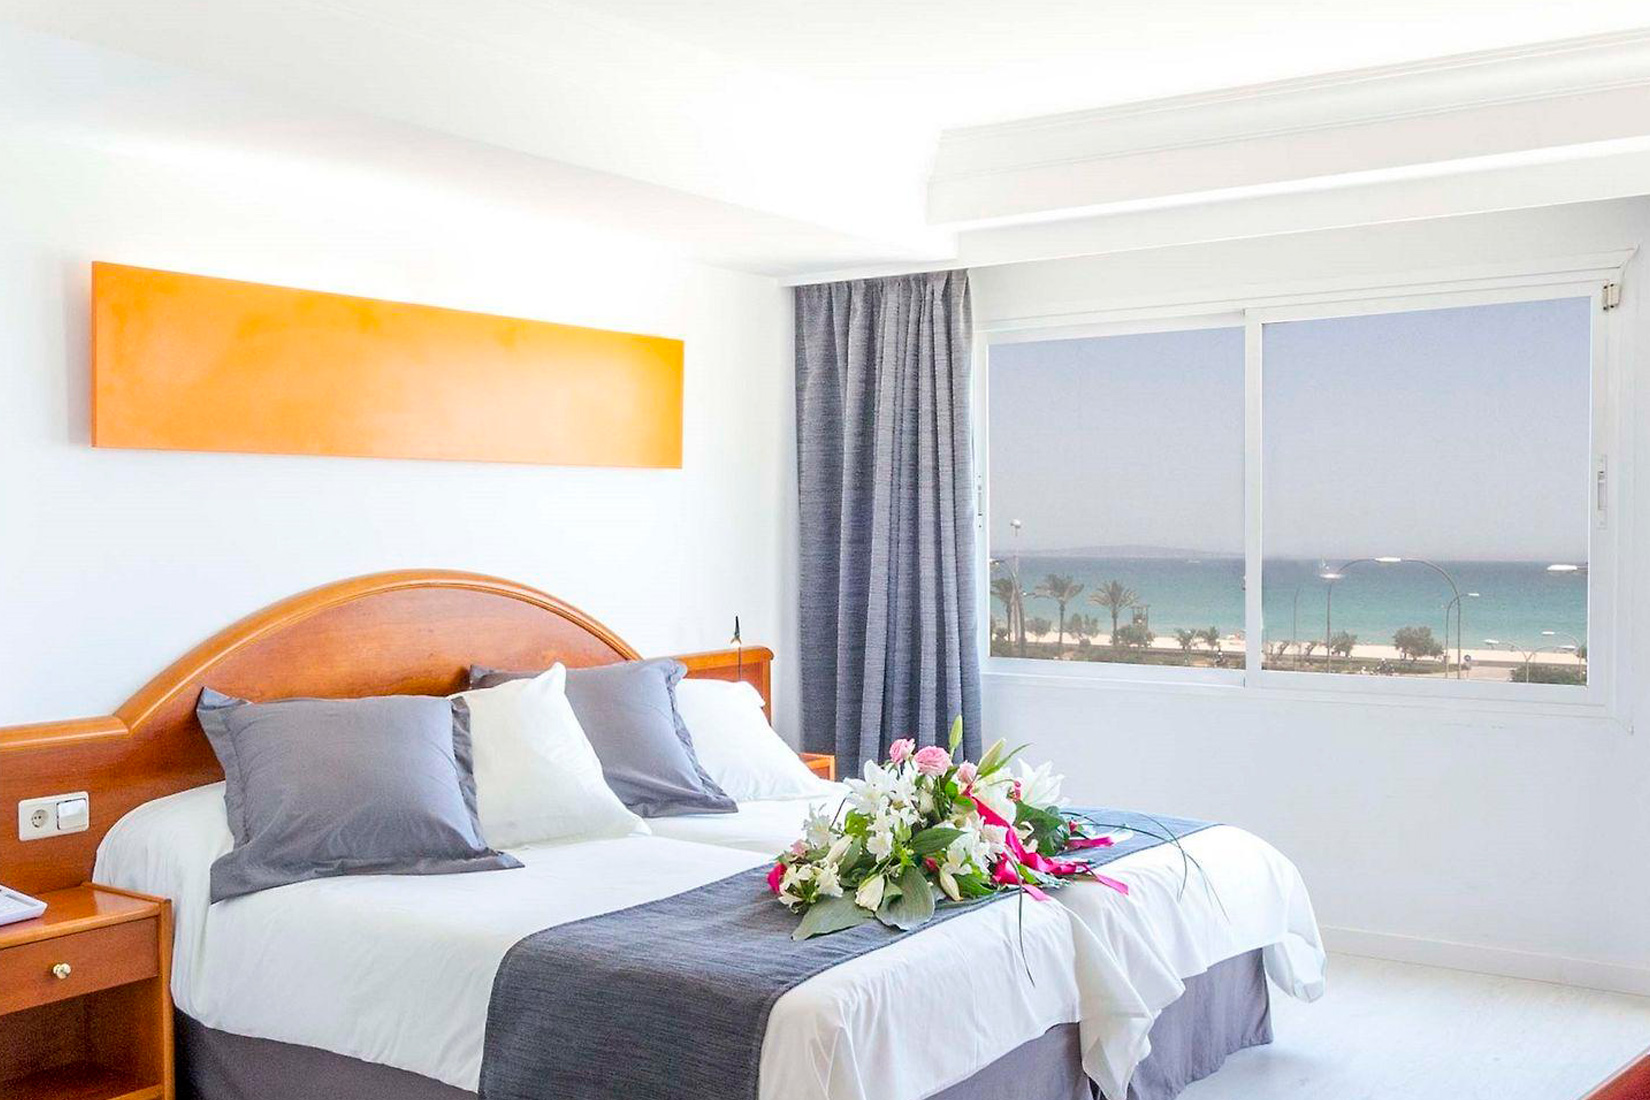 We control the climate of the Hotel Sant Jordi